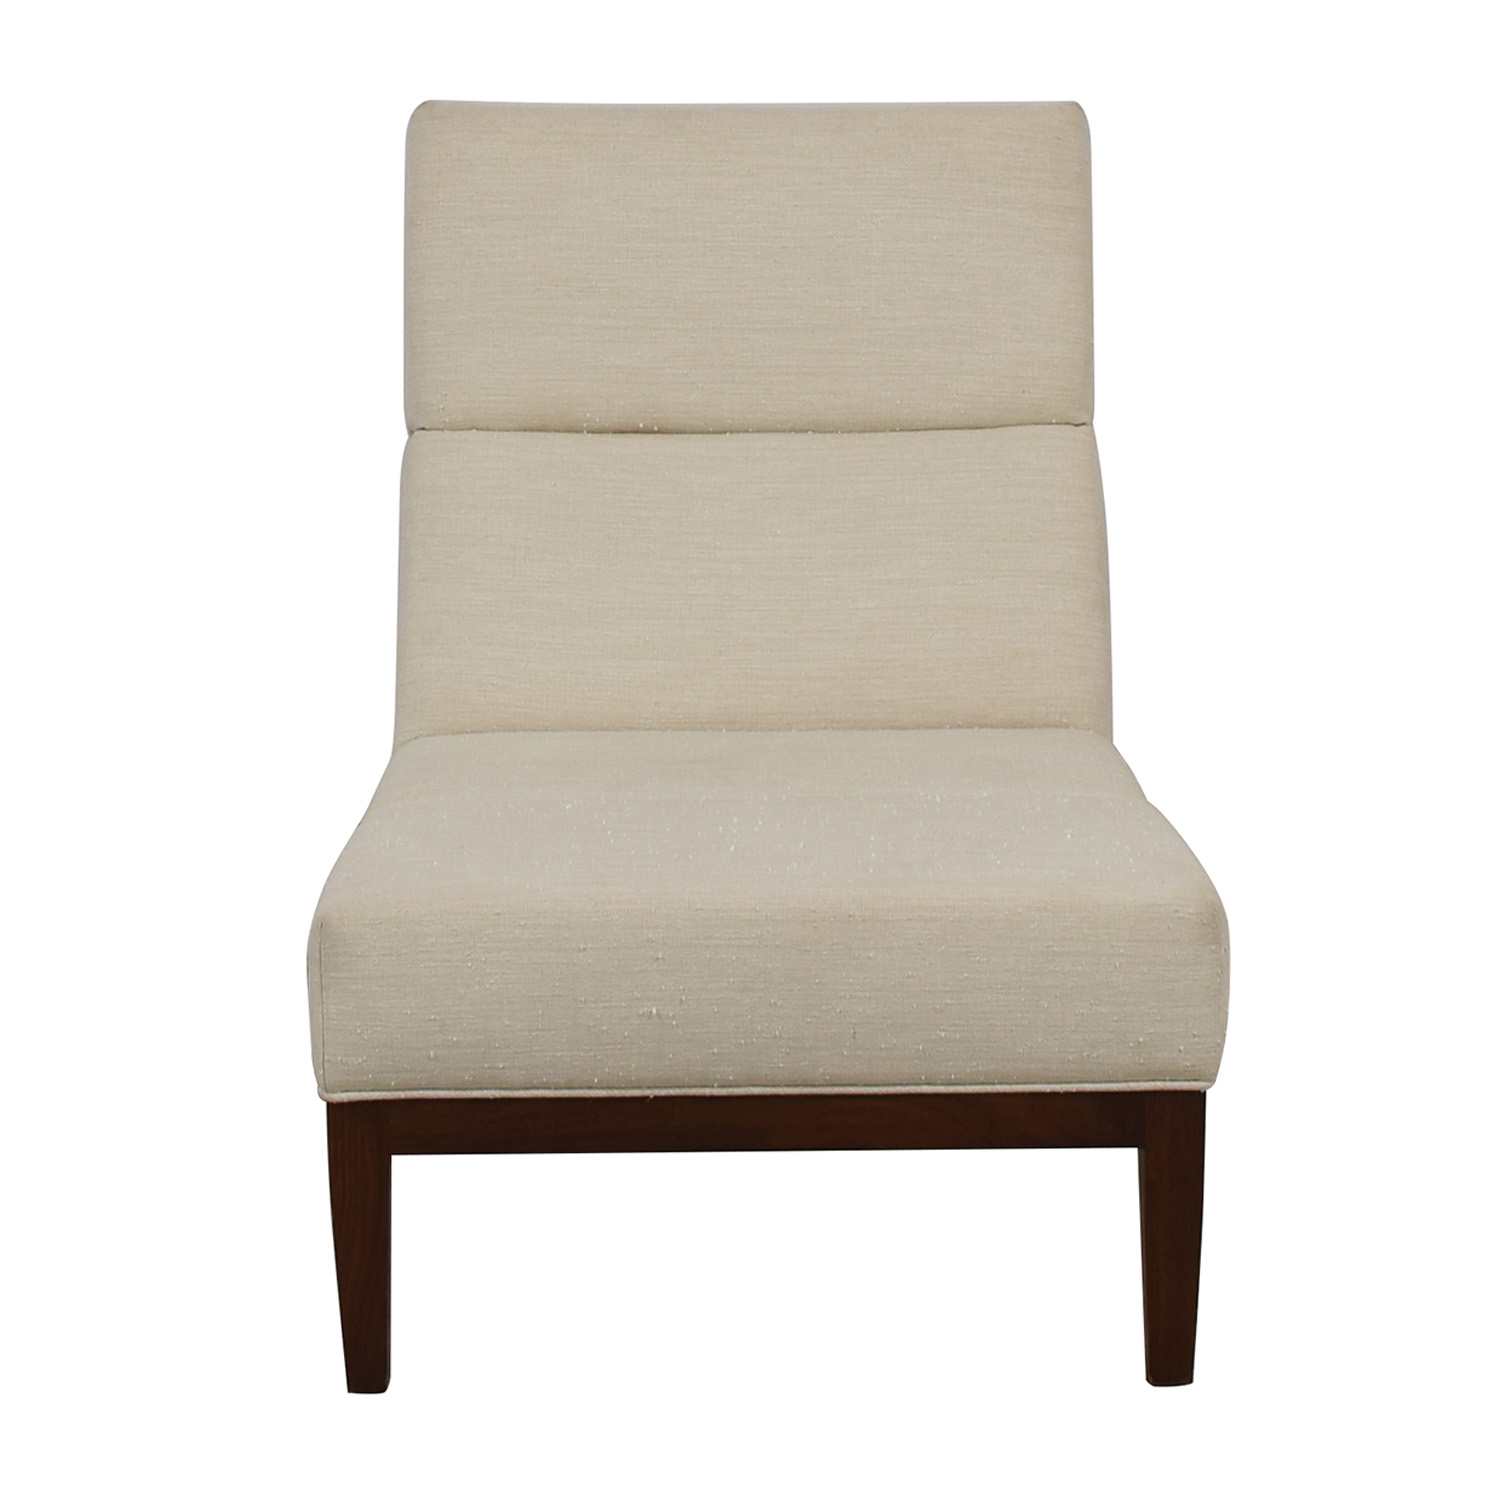 Furniture Masters Furniture Masters White Linen Accent Chair Chairs